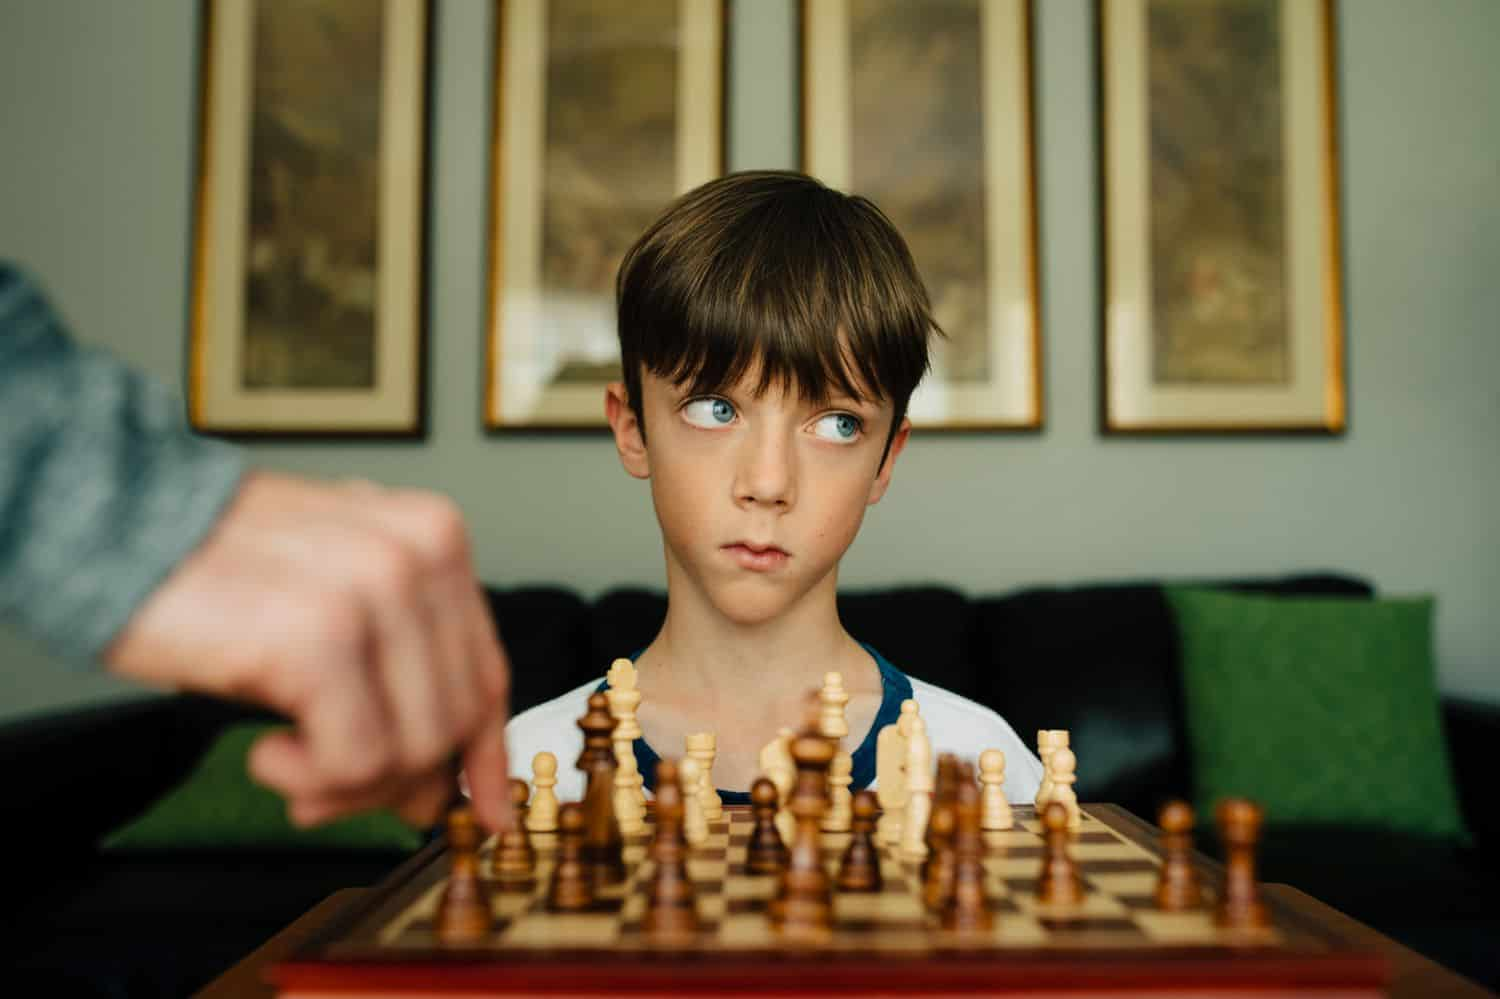 A little boy sits at a chess set rolling his eyes. By Kate T. Parker for The Heart of a Boy